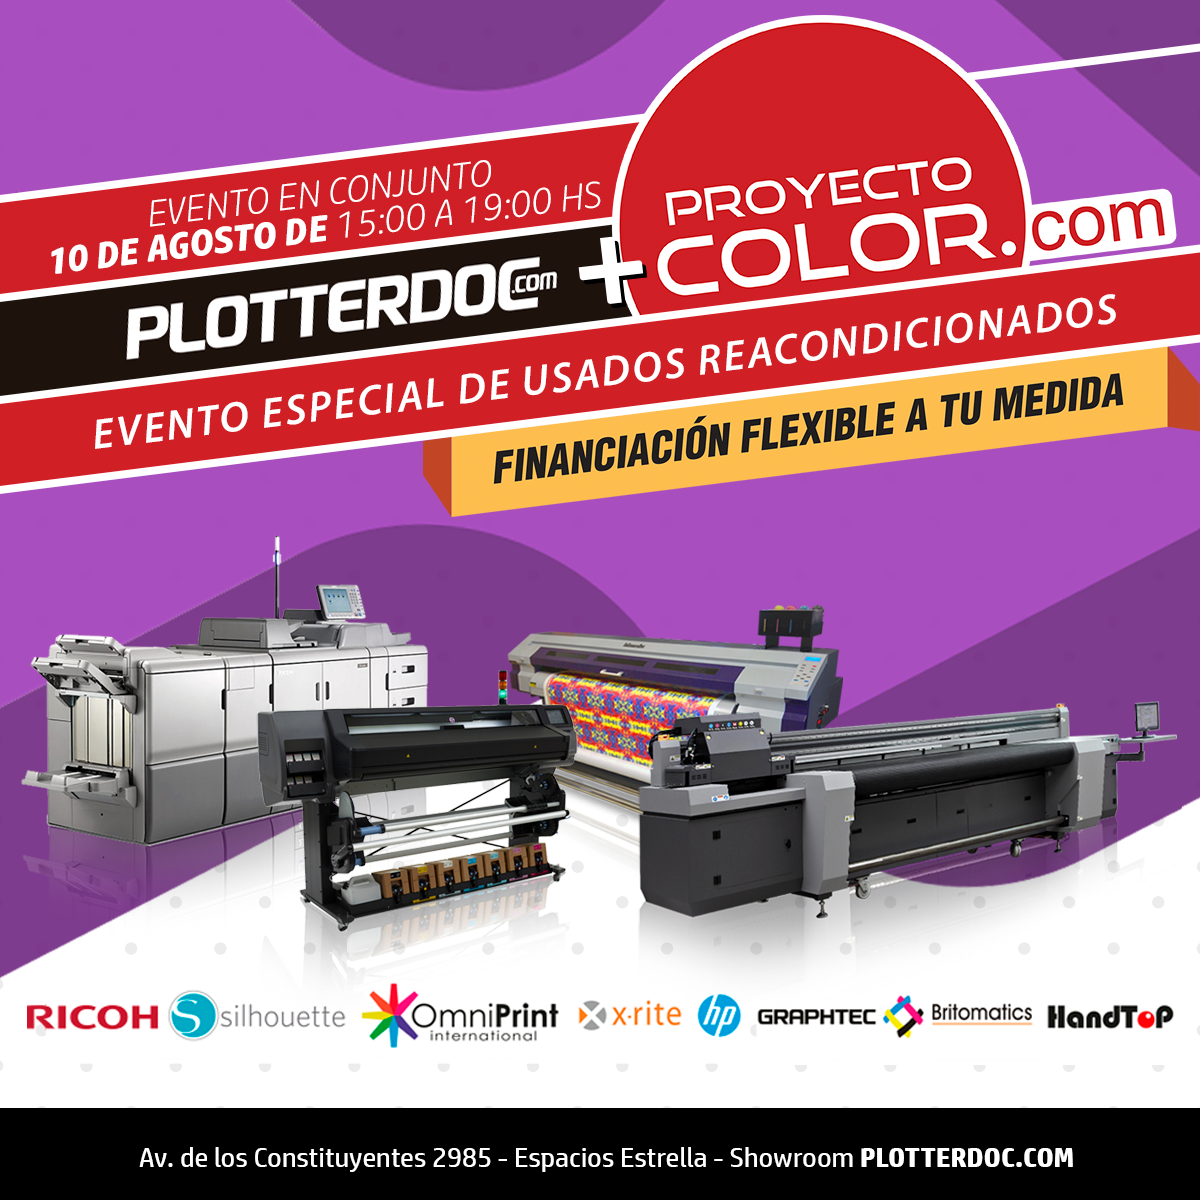 Evento Especial de Usados Reacondicionados - PLOTTERDOC + PROYECTO COLOR